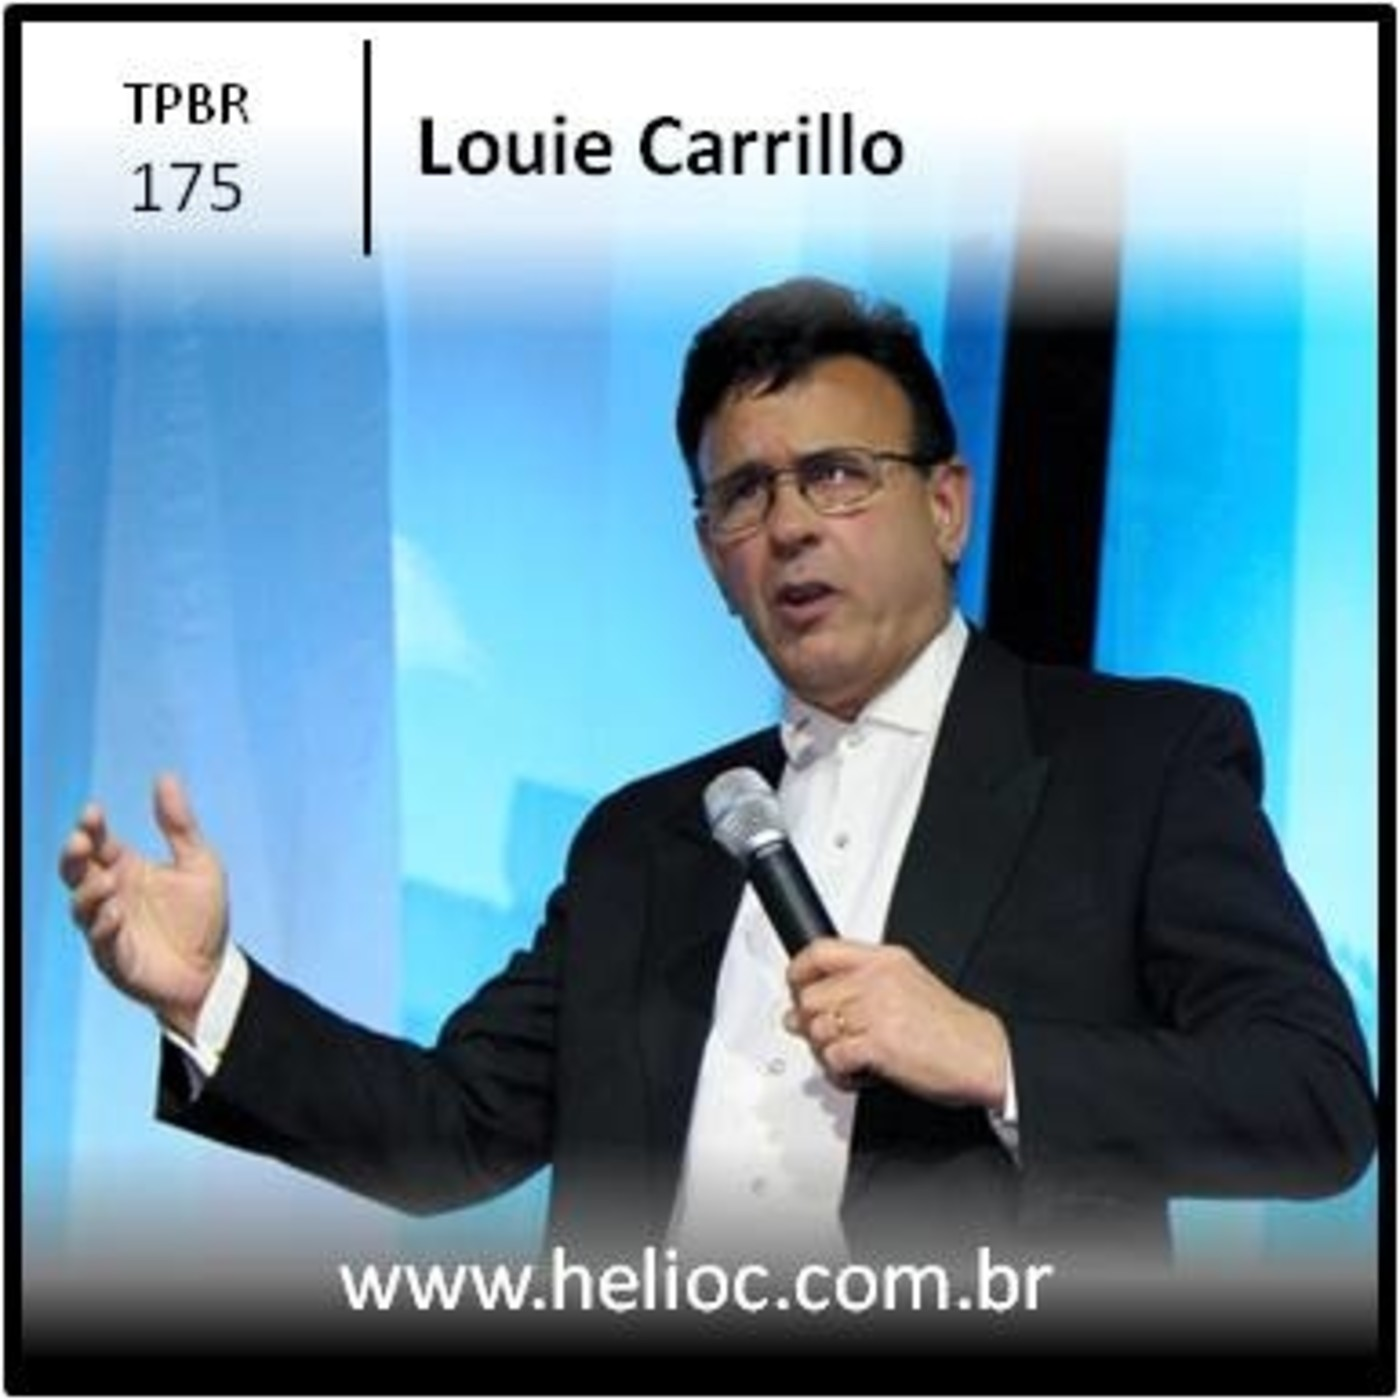 TPBR 175 - Alto Nivel de Determinacao - Louie Carrillo